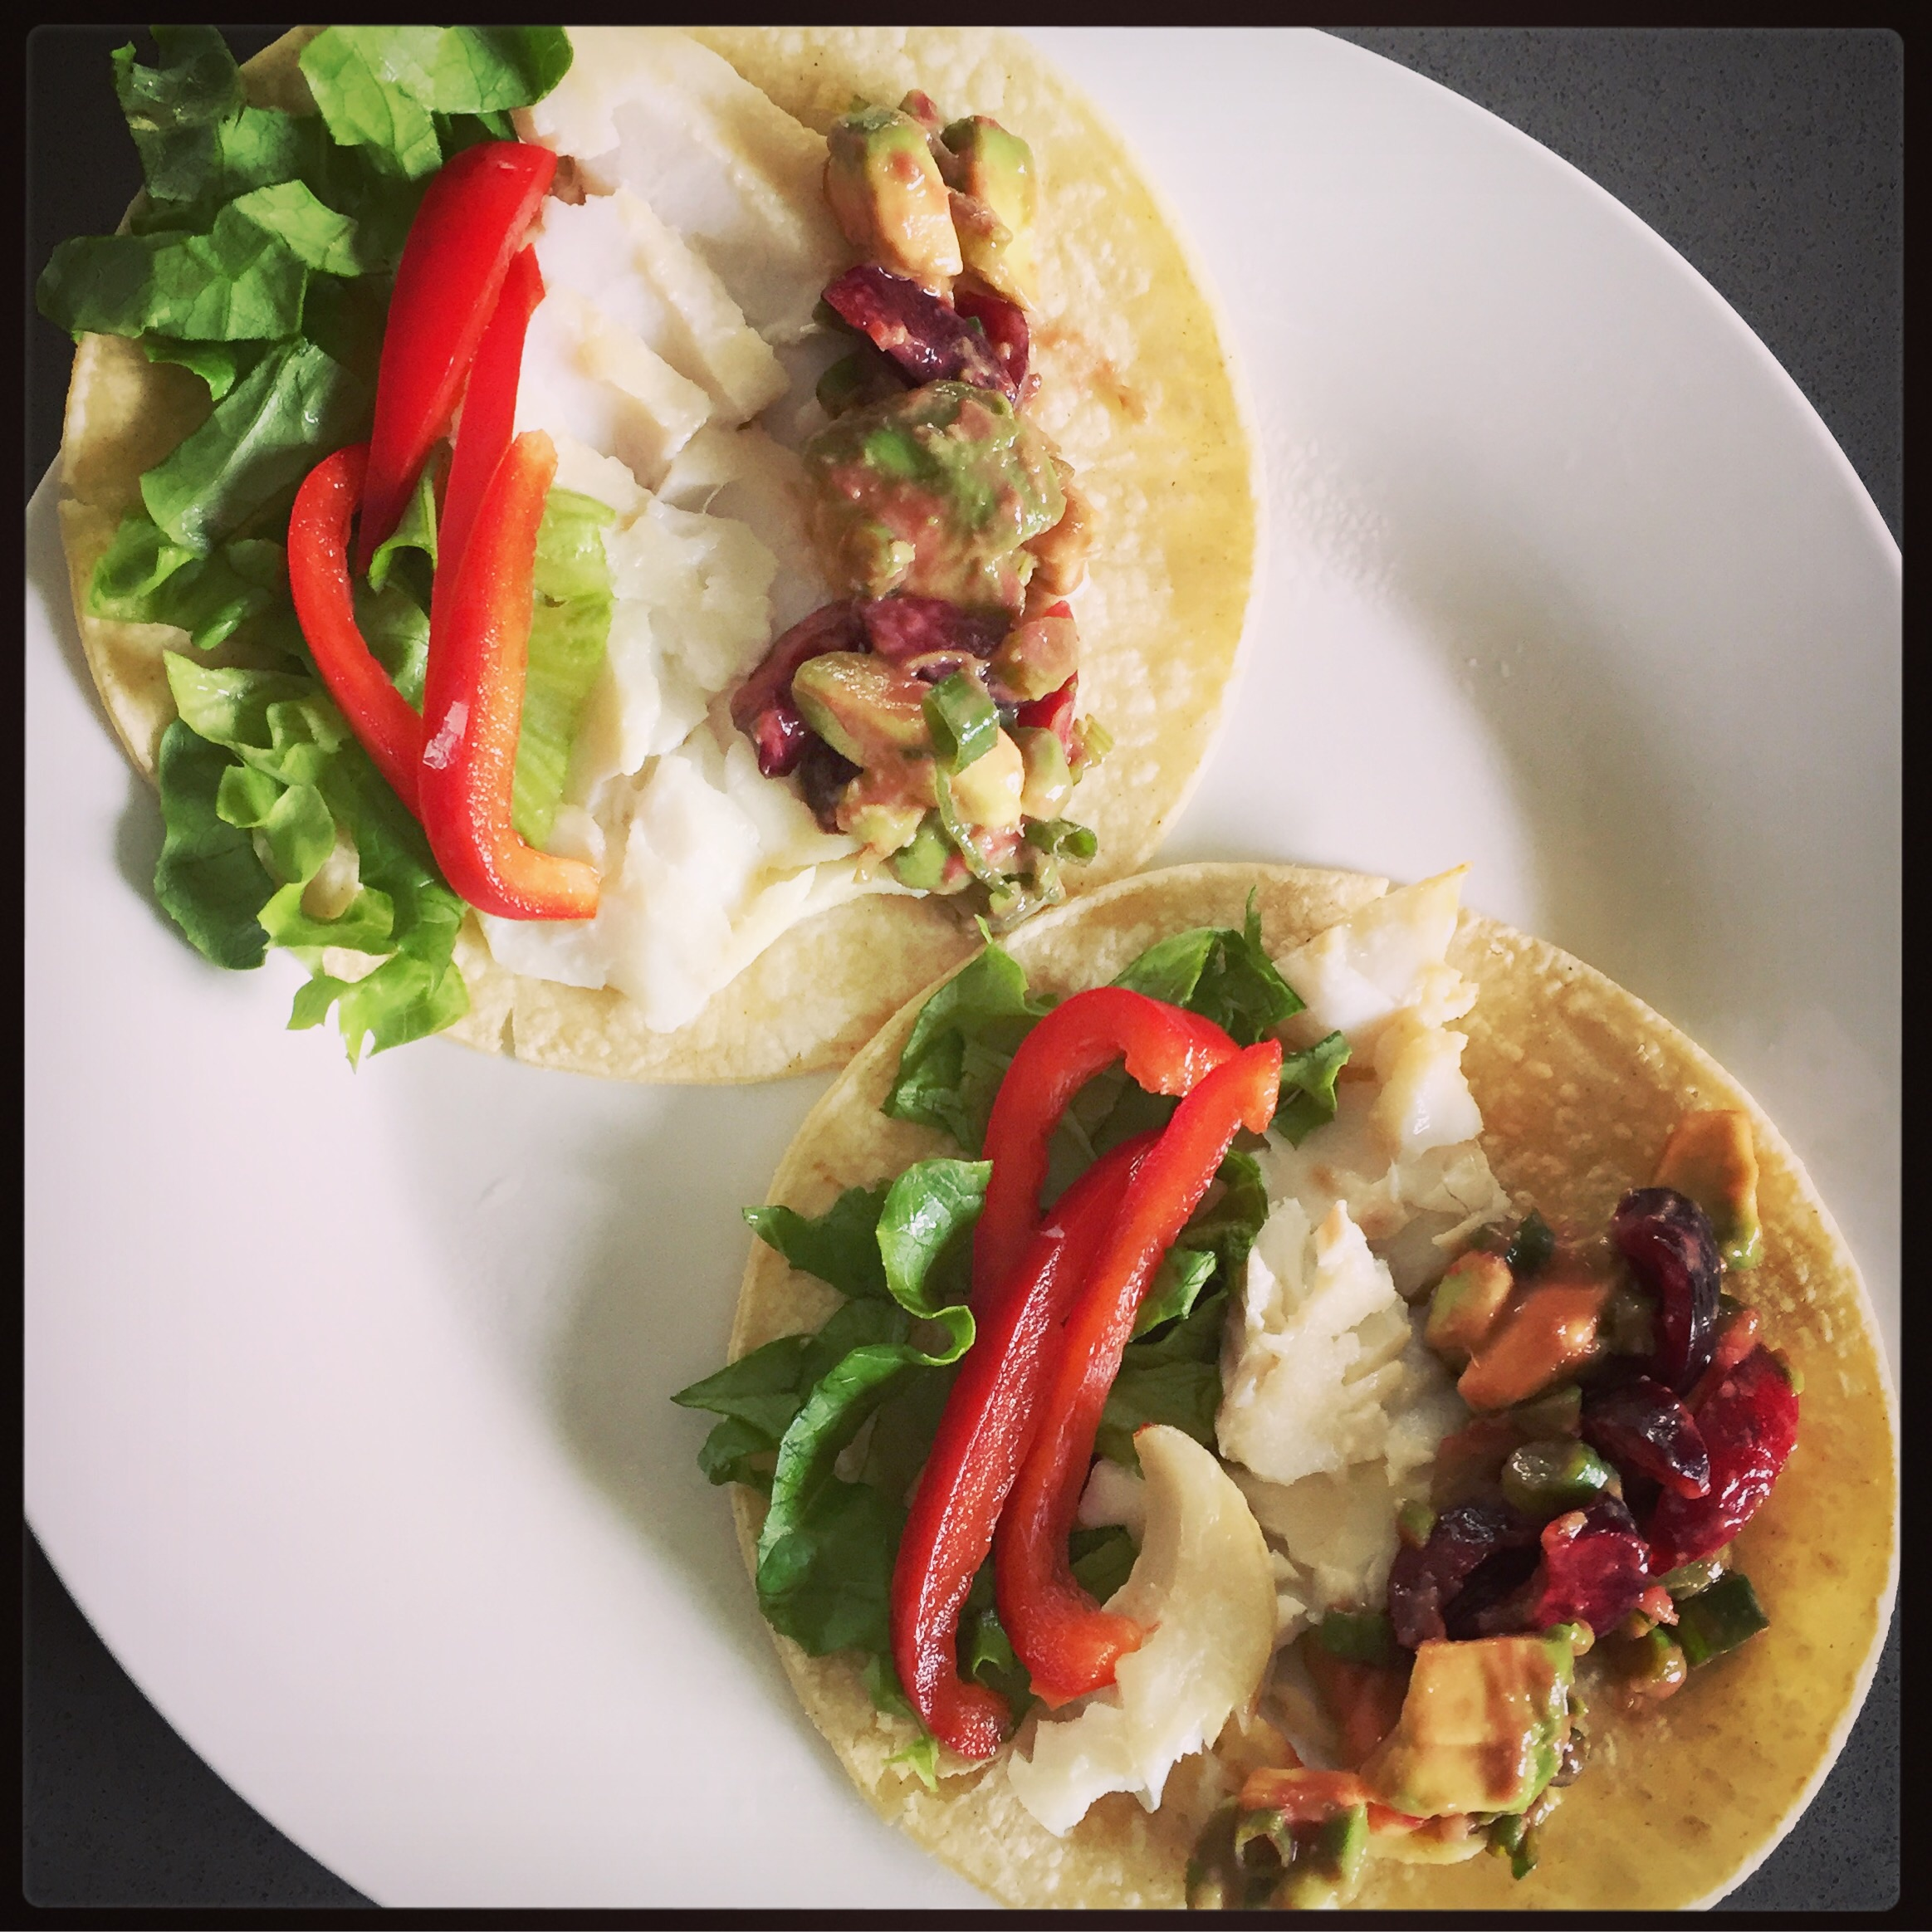 Fish tacos with fresh cherry salsa.